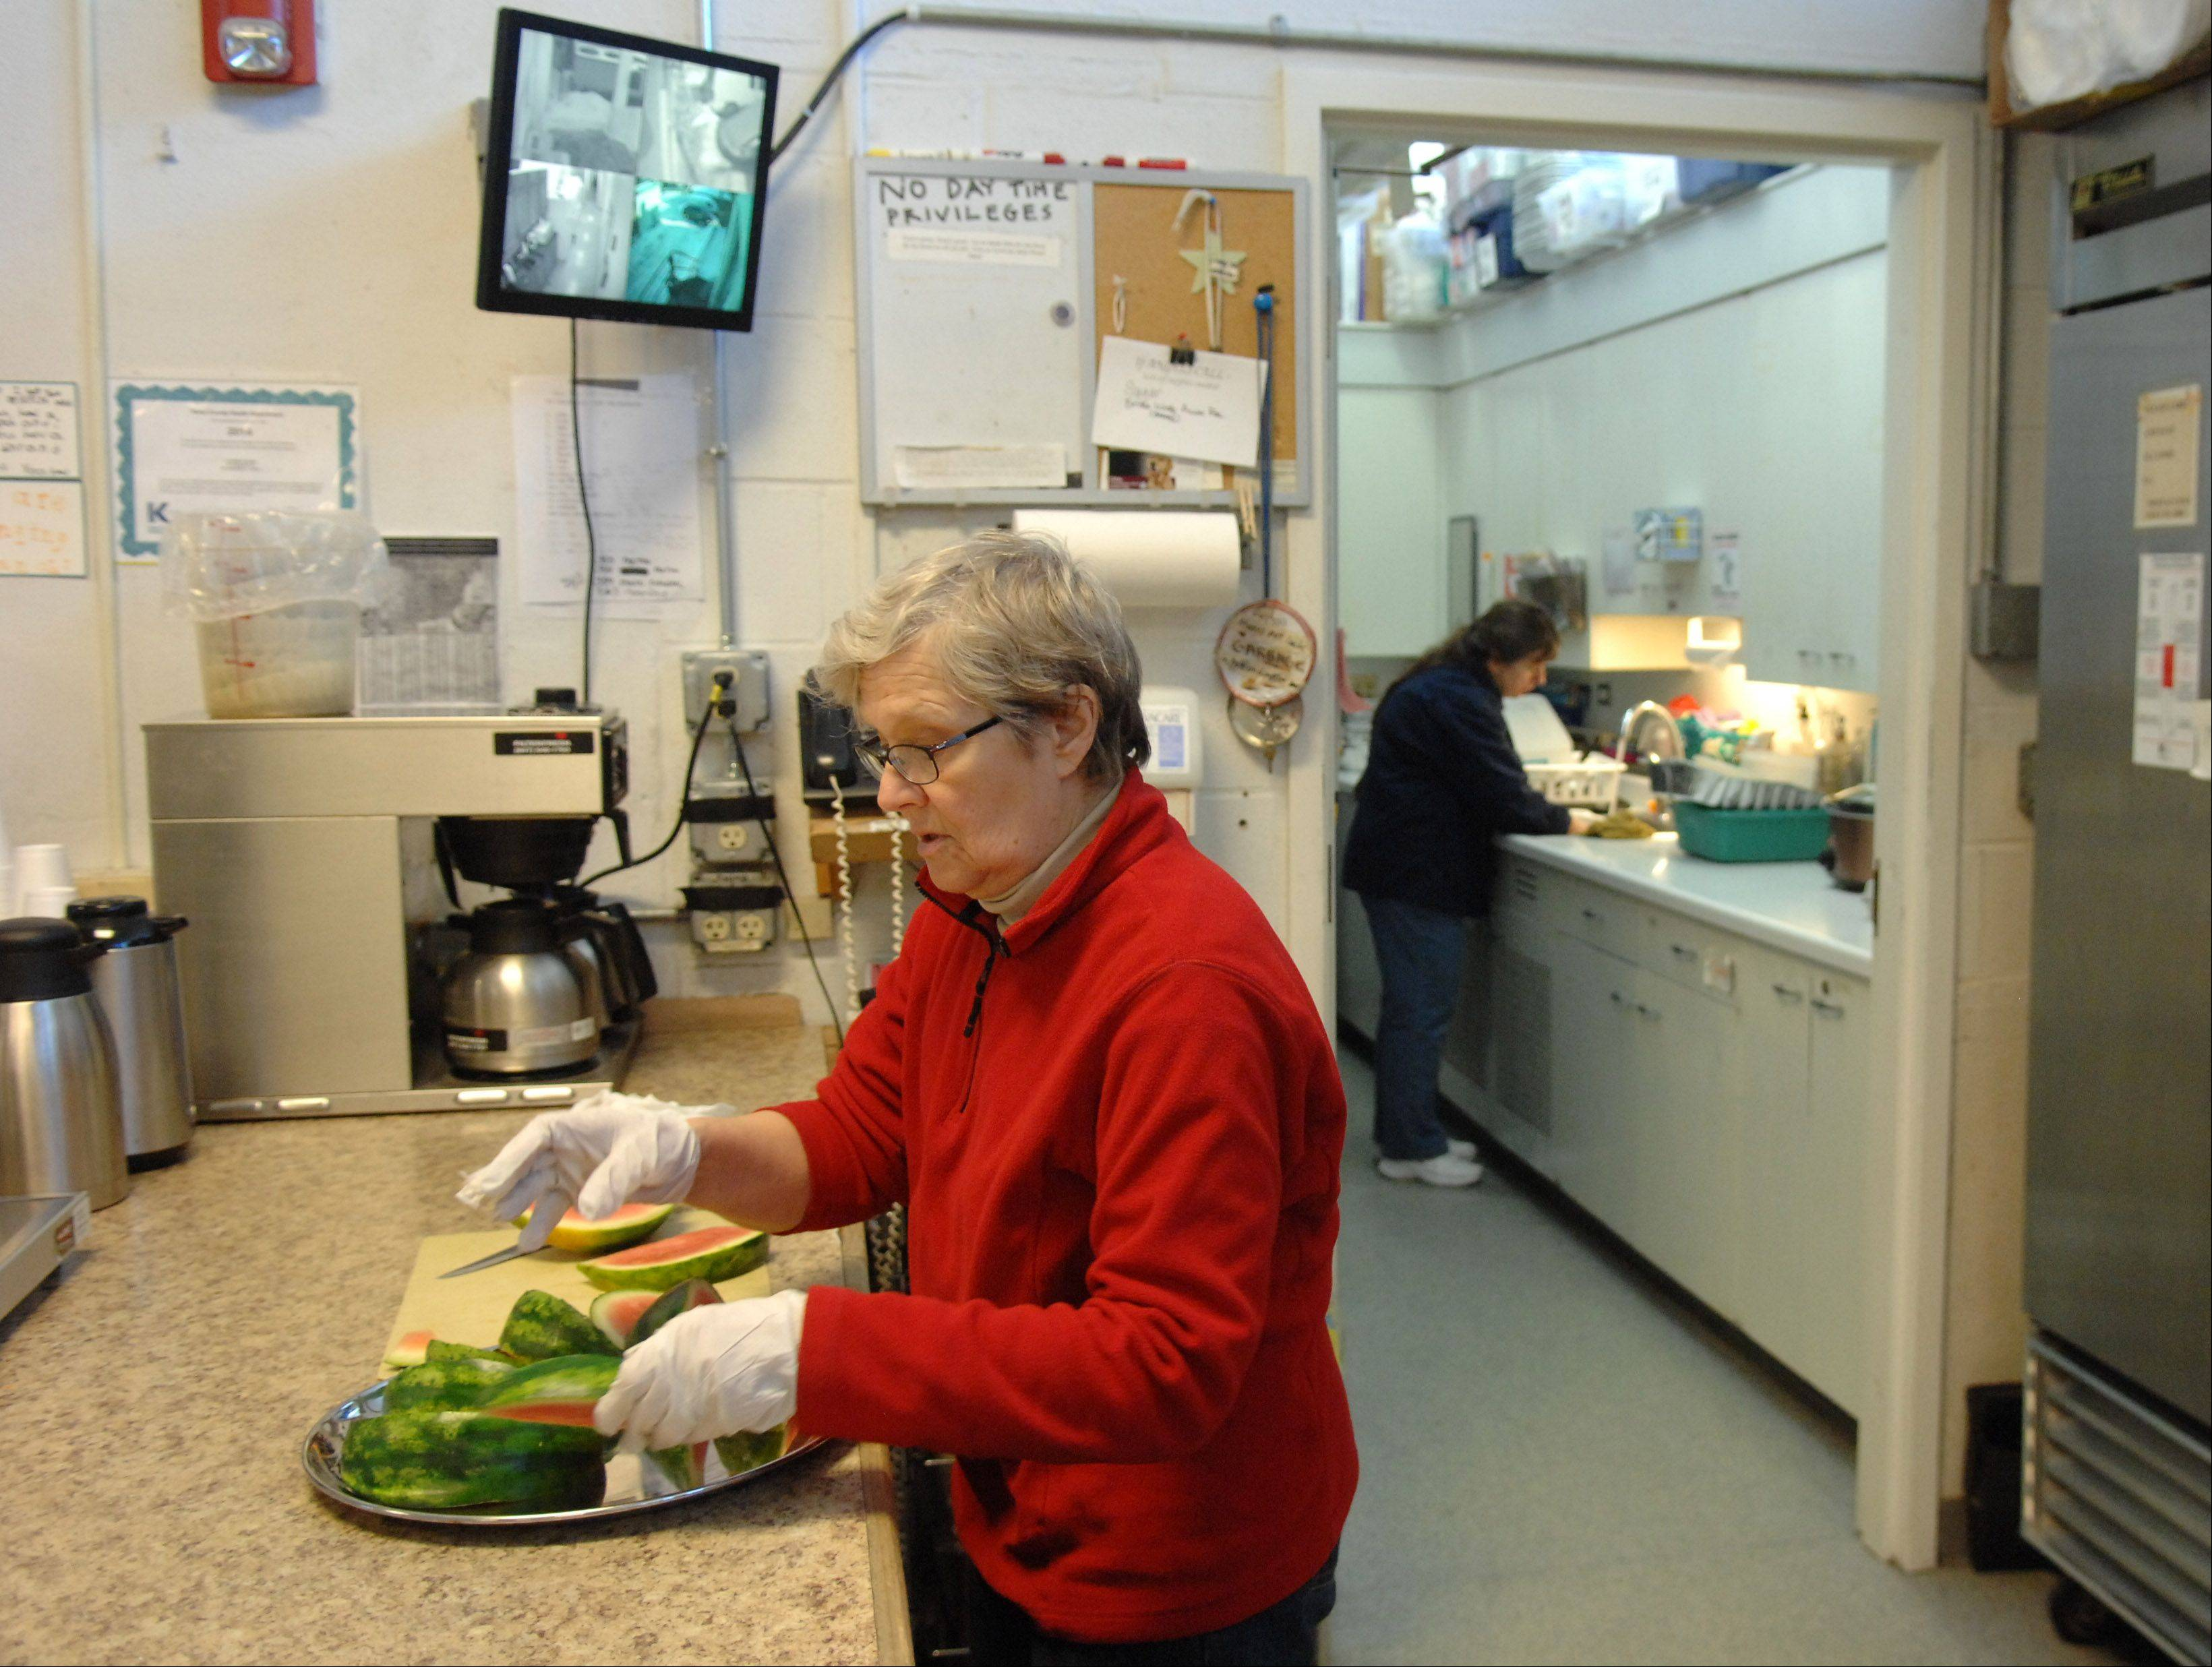 Lazarus House volunteer Nona Koivula of St. Charles cuts watermelon Monday in preparation for lunch. �I�m trying to make it seem a little more like summer,� she said. She�s been volunteering three days a week at the shelter for almost two years. �I�m too old for the Army, so this is how I serve my community and my country.�